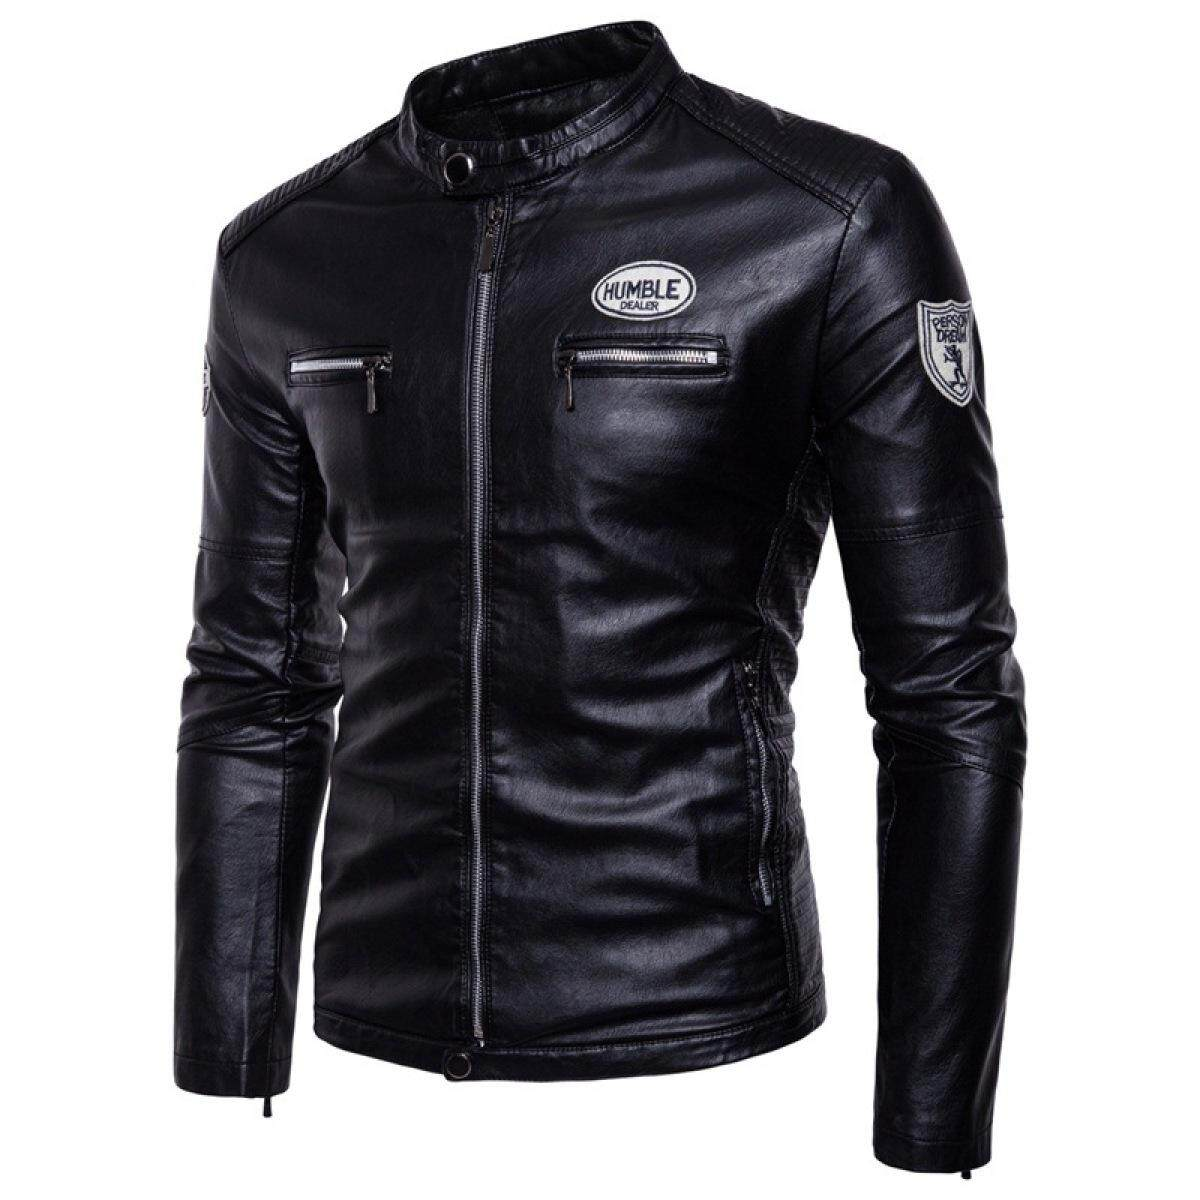 aace54cdb10 (BEST)-AliExpress trade in autumn and winter men s large size label  motorcycle male